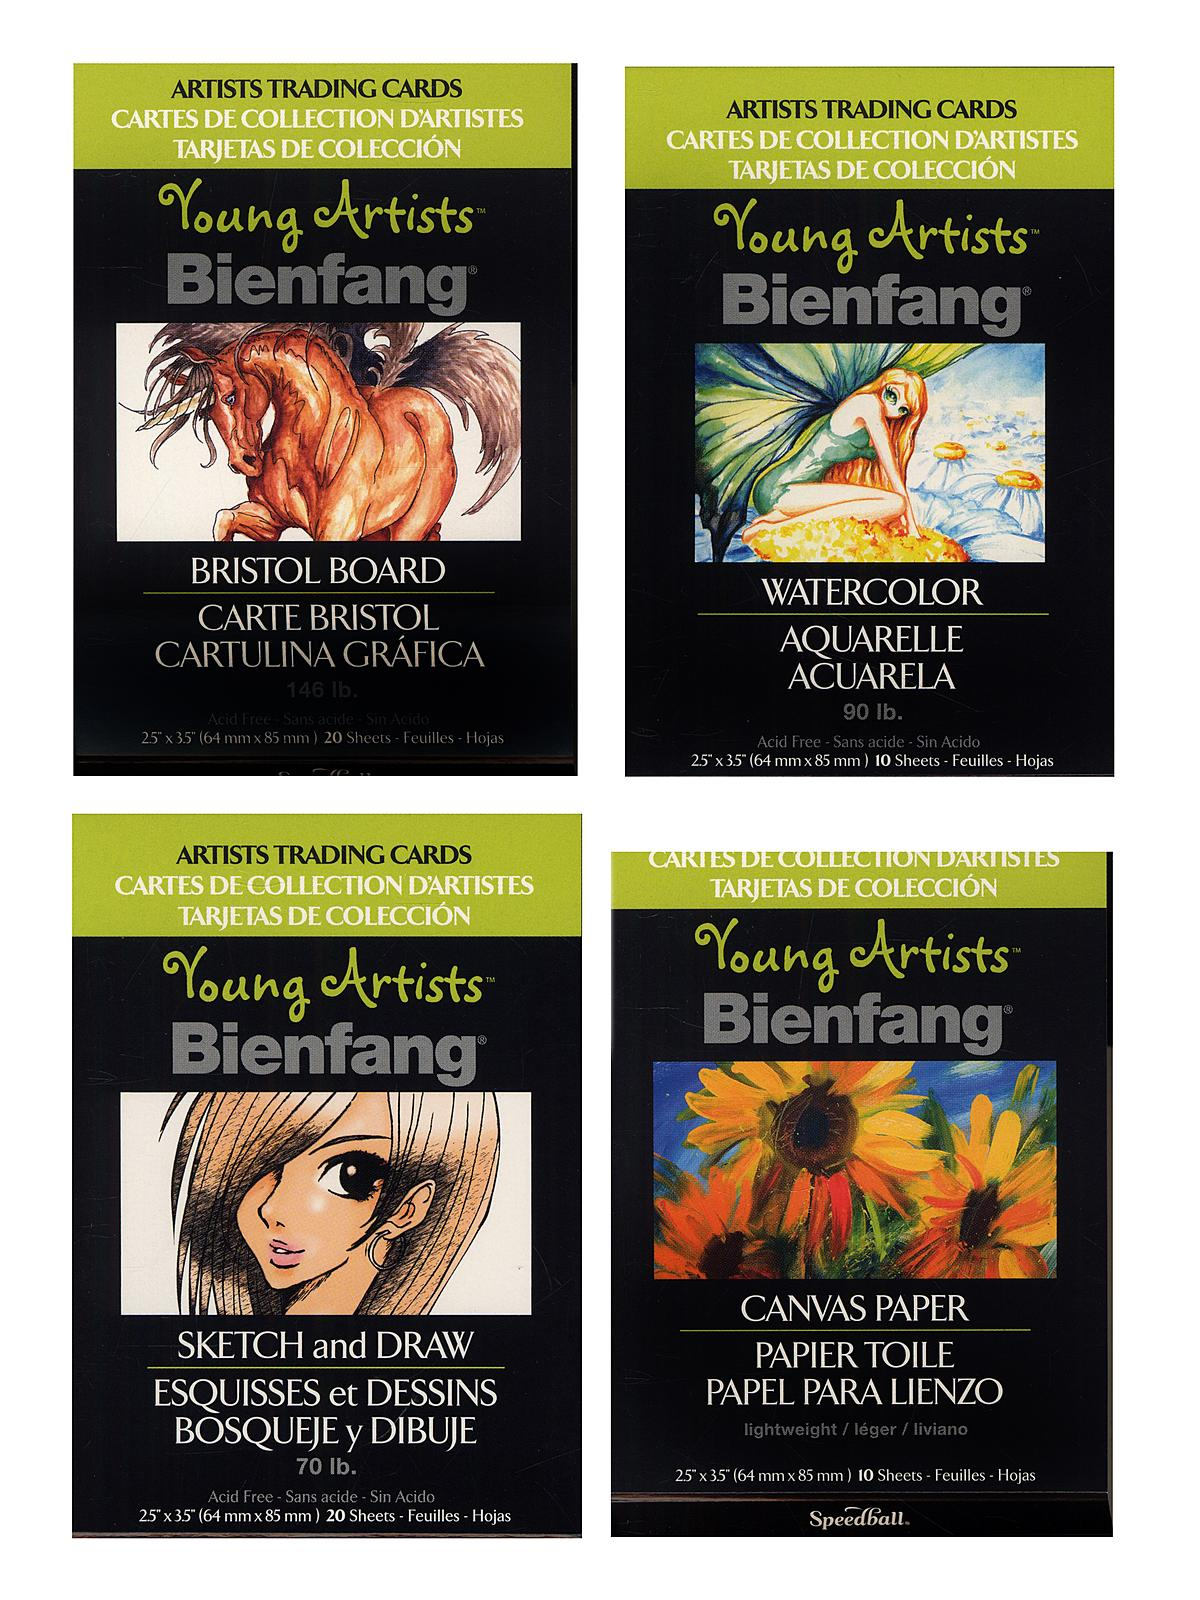 Bienfang Young Artists Trading Cards Misterart Com